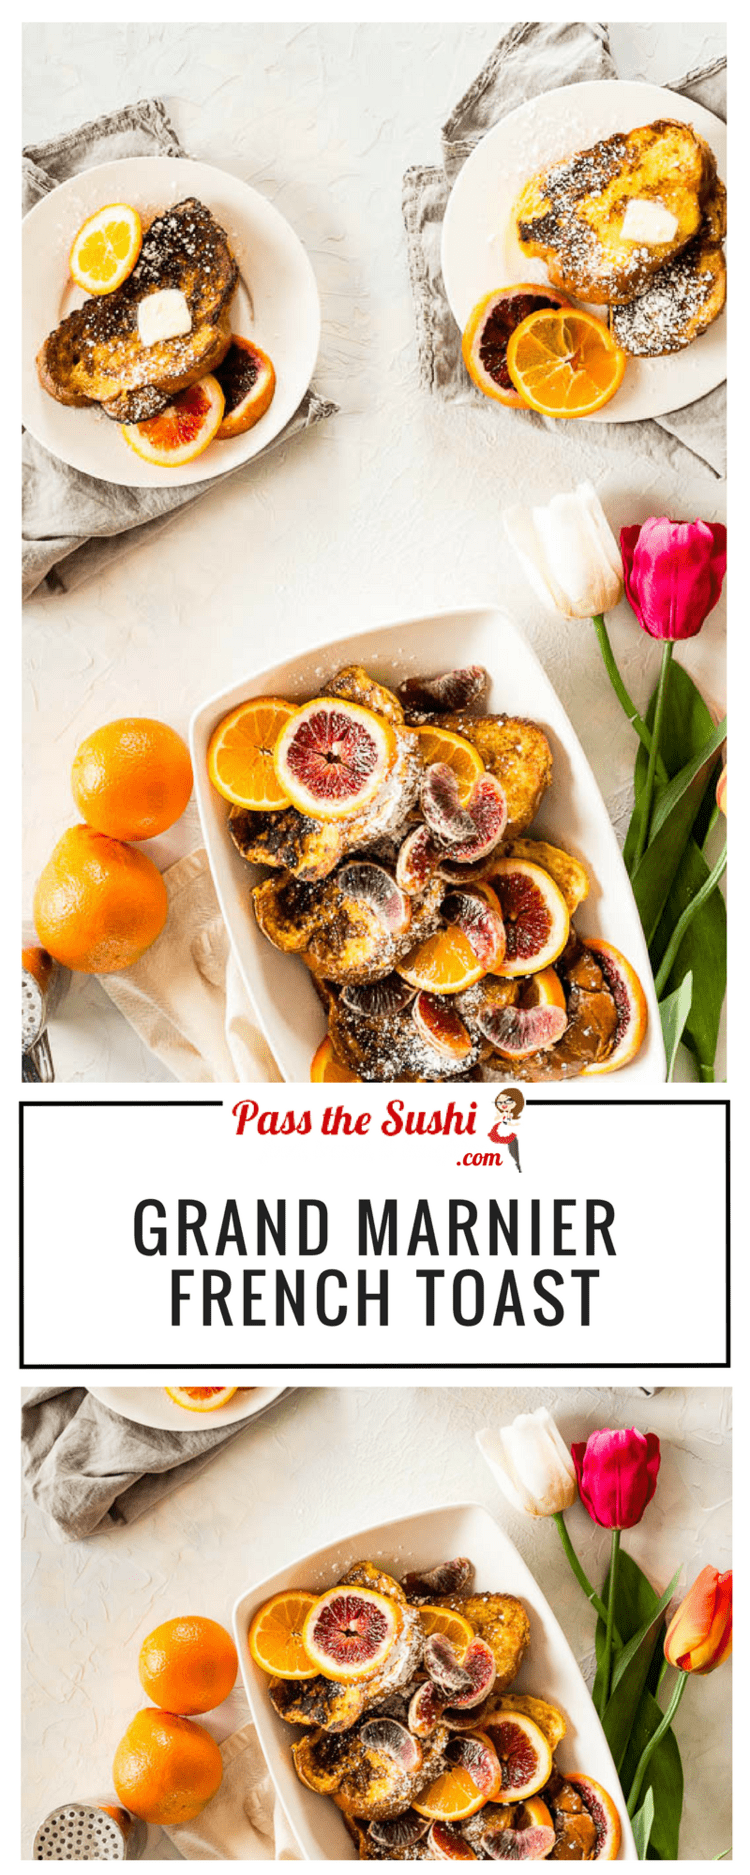 Grand Marnier French Toast Recipe